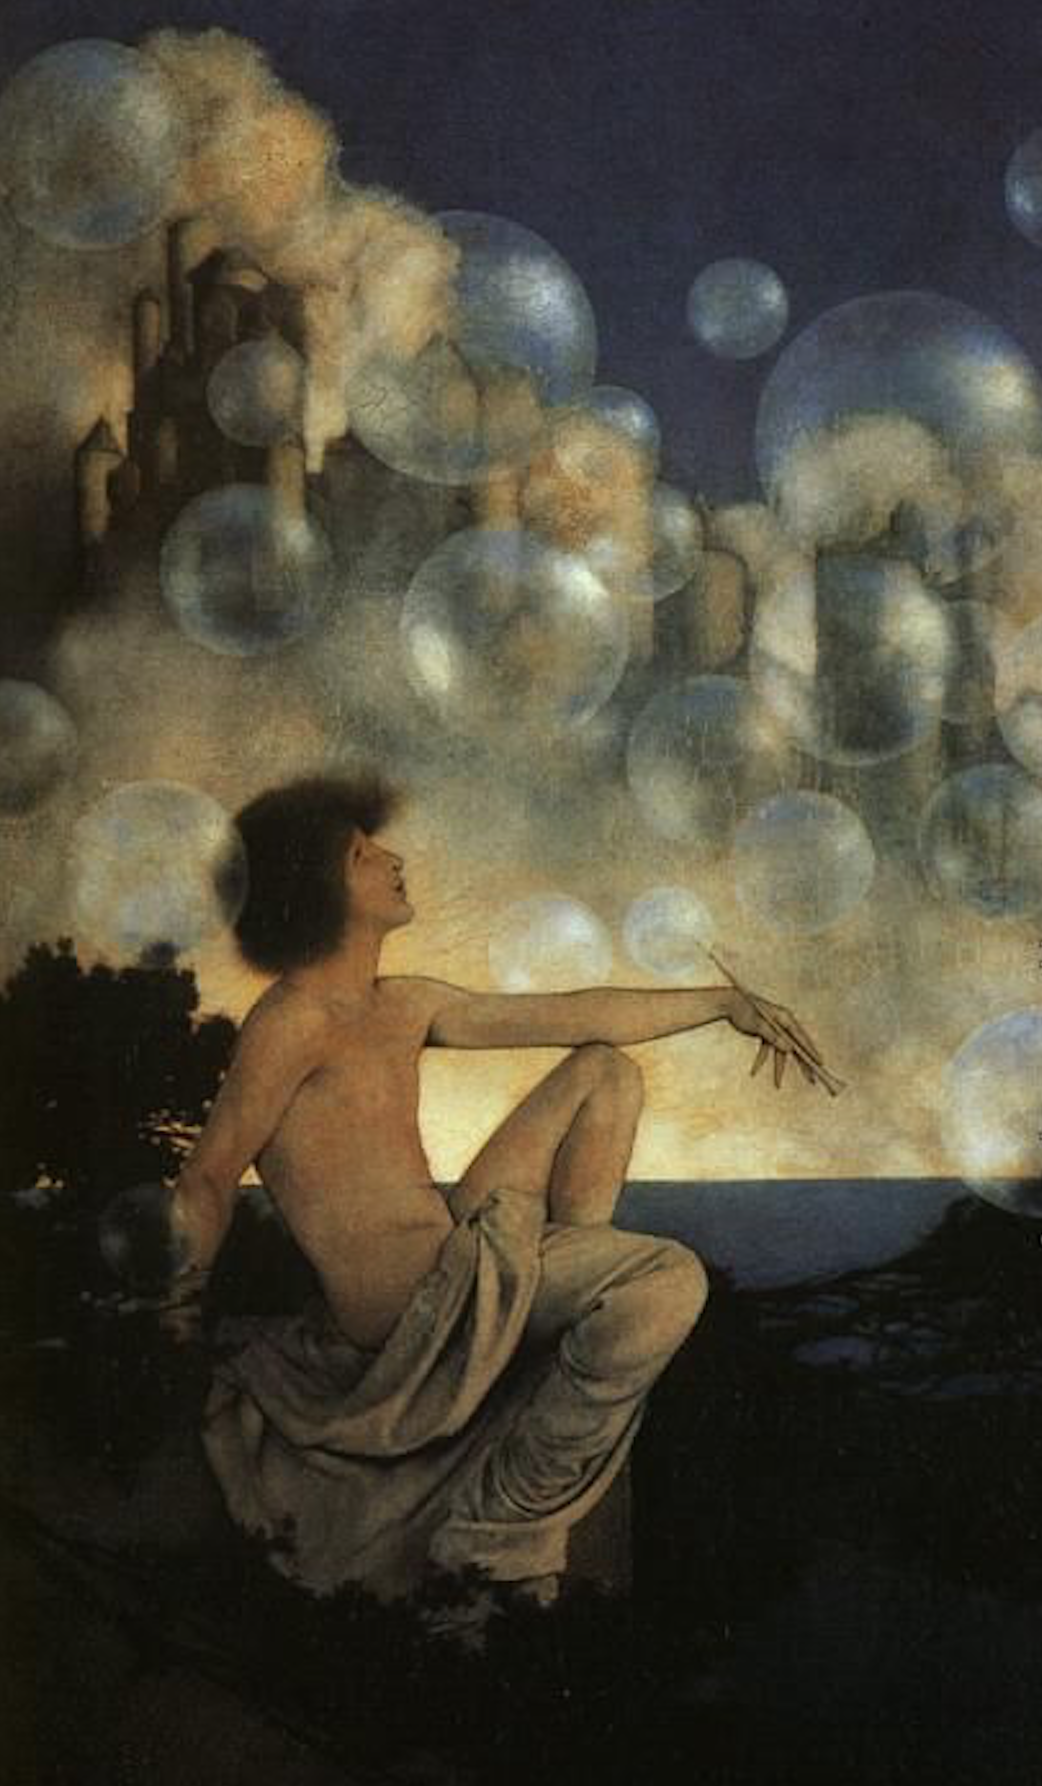 'Air Castles' - Maxfield Parrish (1904)